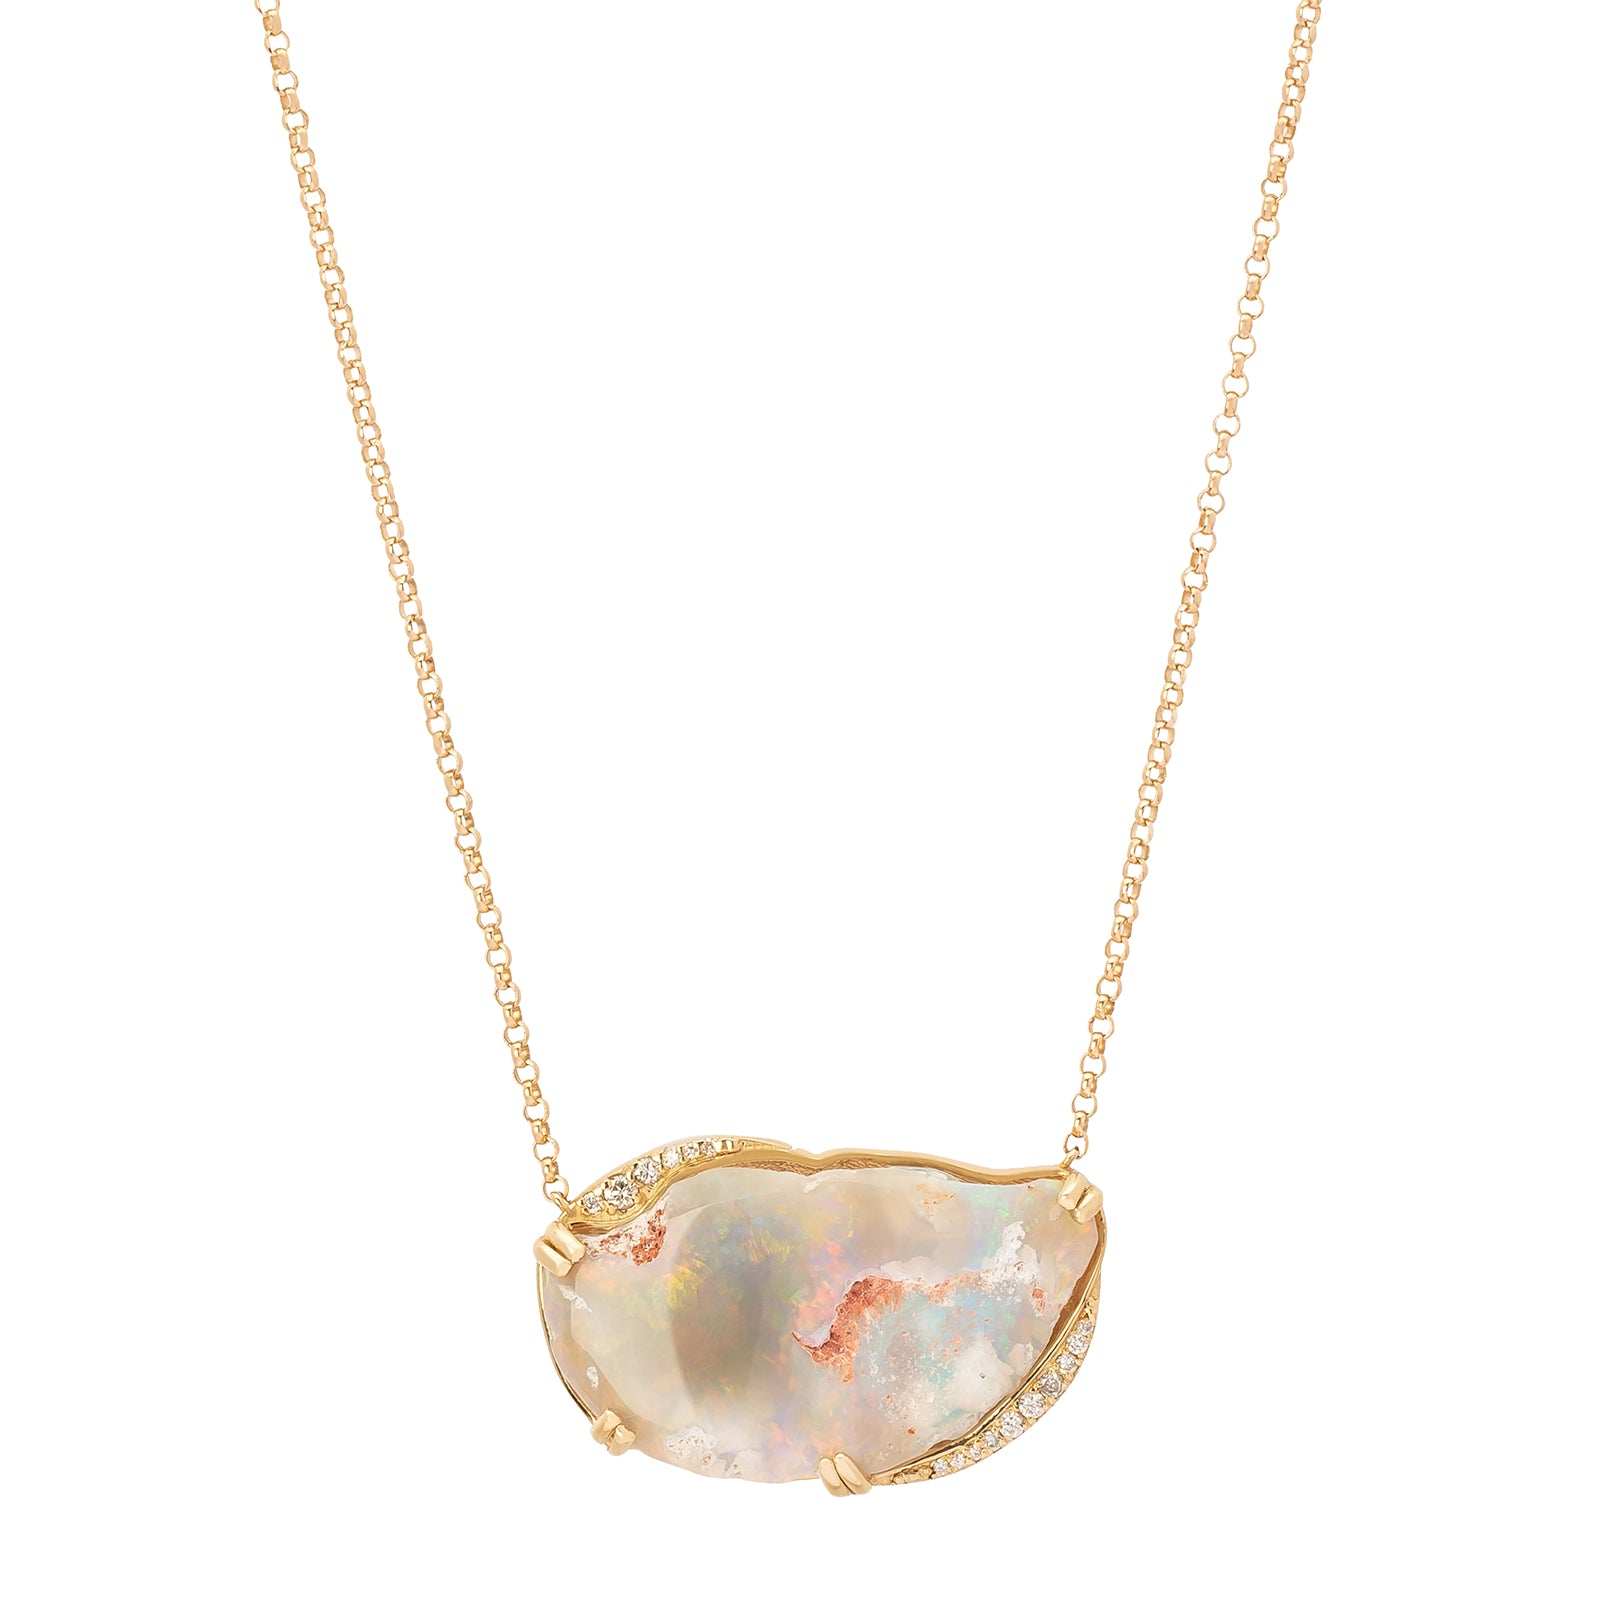 BaYou with Love Half Moon Necklace - Opal - Necklaces - Broken English Jewelry